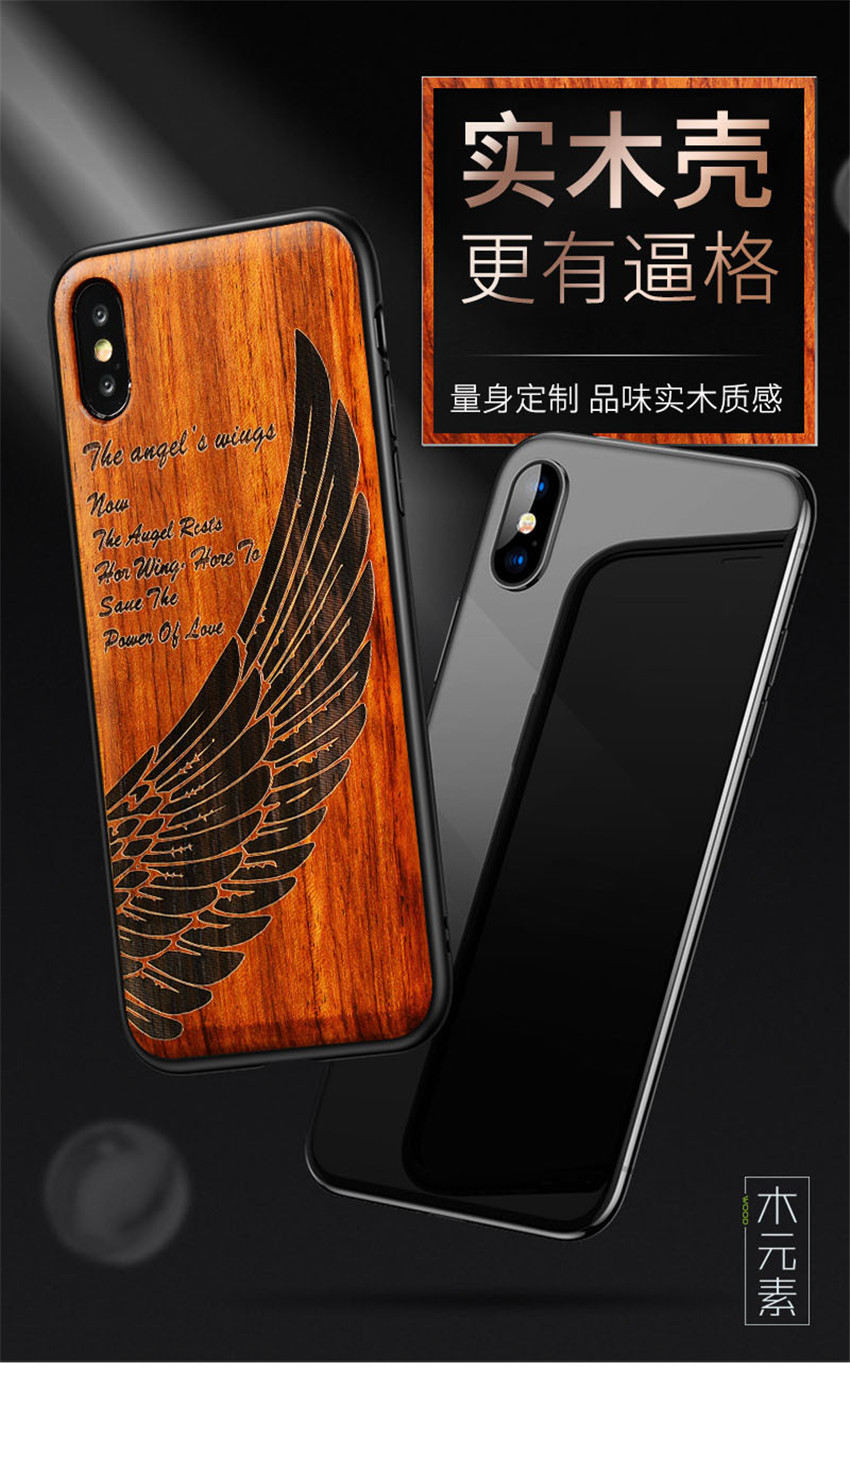 2018 New For iPhone XS Max Case Slim Wood Back Cover TPU Bumper Case For iPhone X iPhone XS Phone Cases (1)